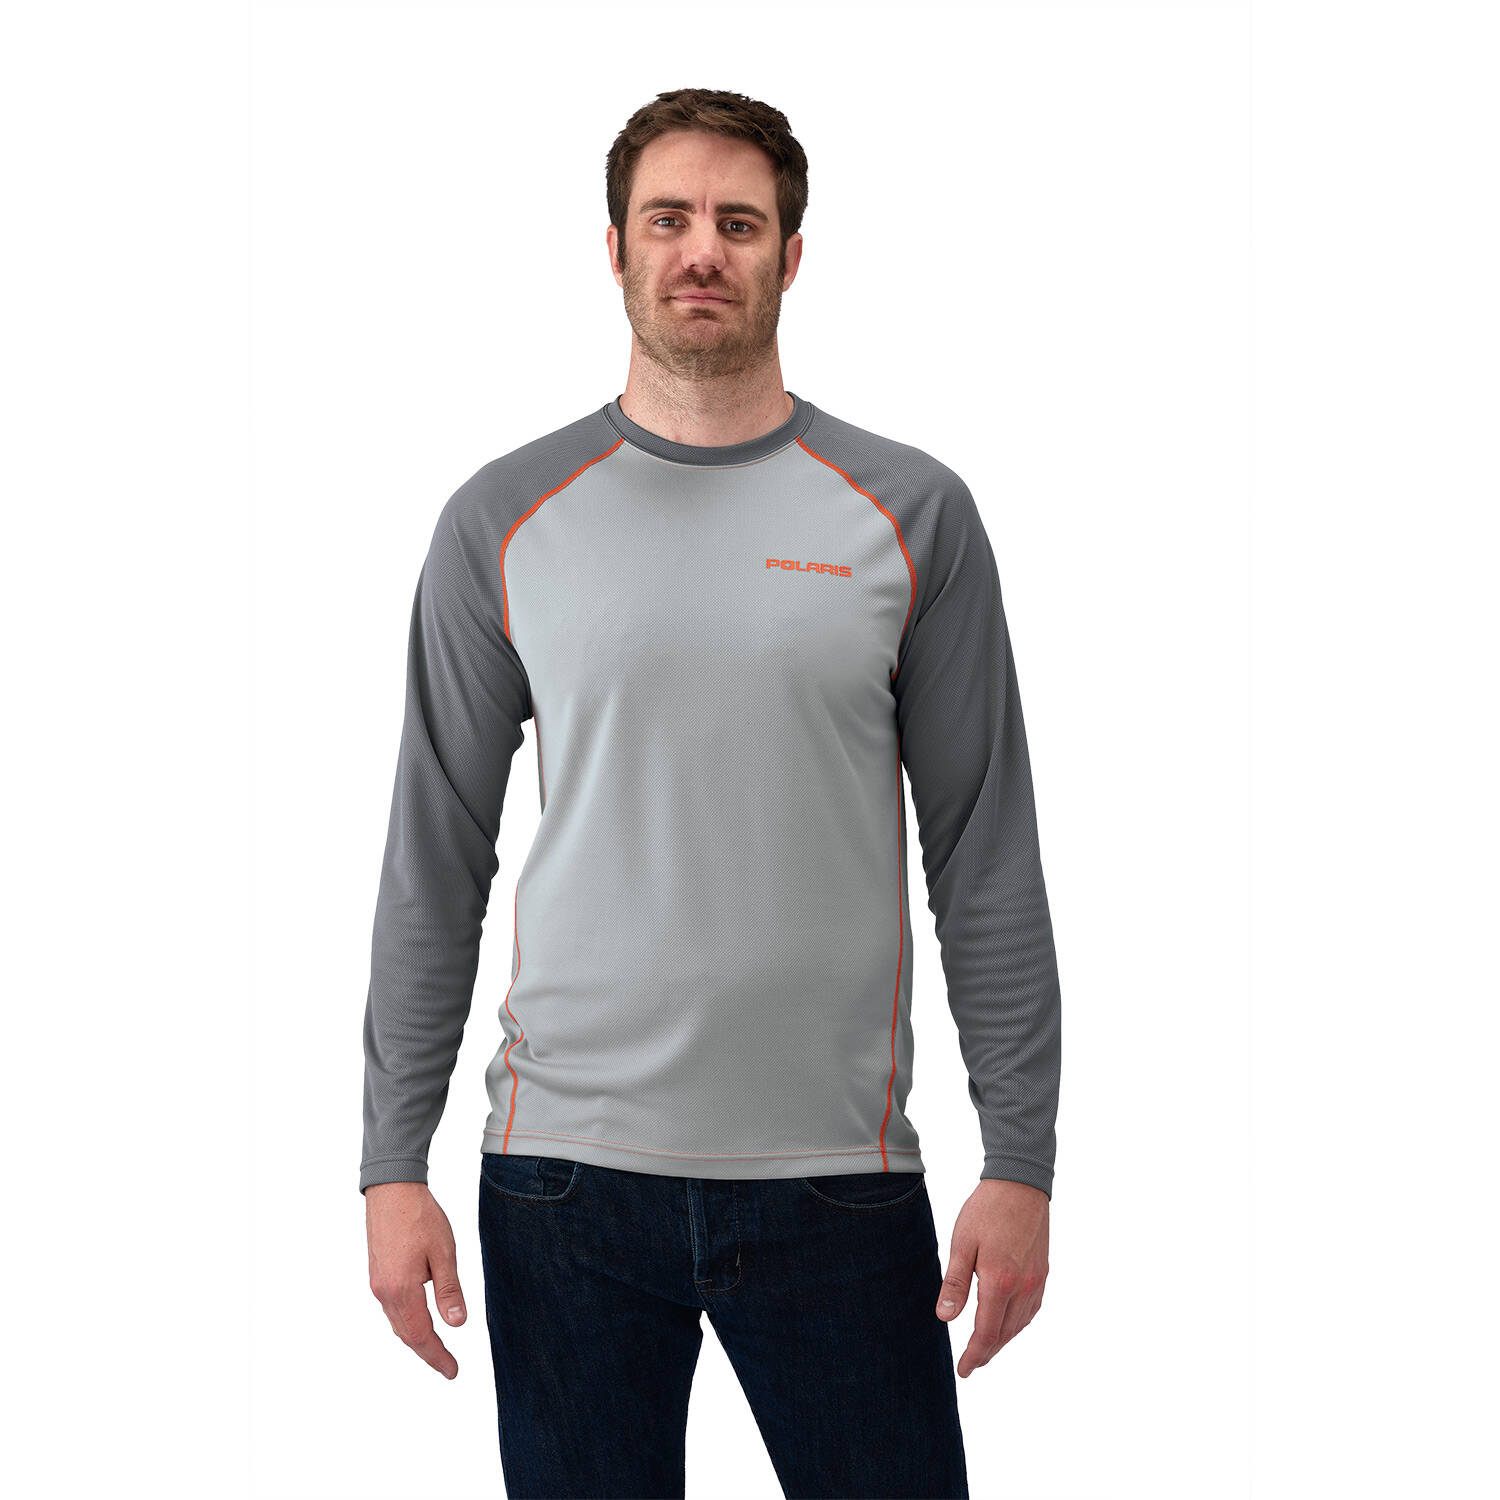 Men's Long-Sleeve Cooling Performance Shirt with Polaris® Logo, Gray